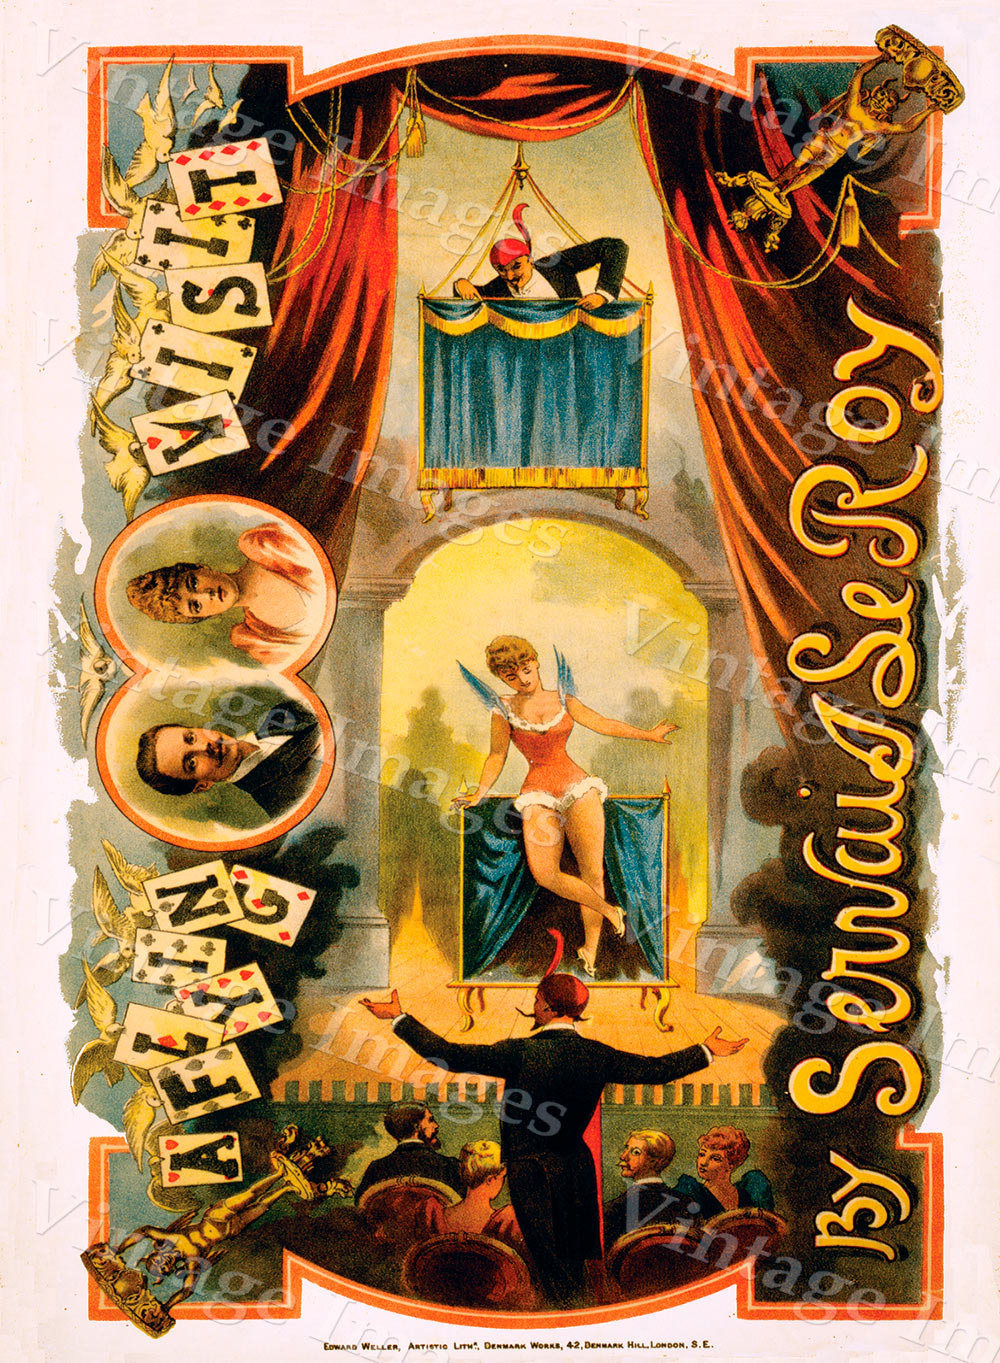 vintage 1890 Servais LeRoy Magic magician Poster 10 X 14 Fine Art Print Giclee home wall decor